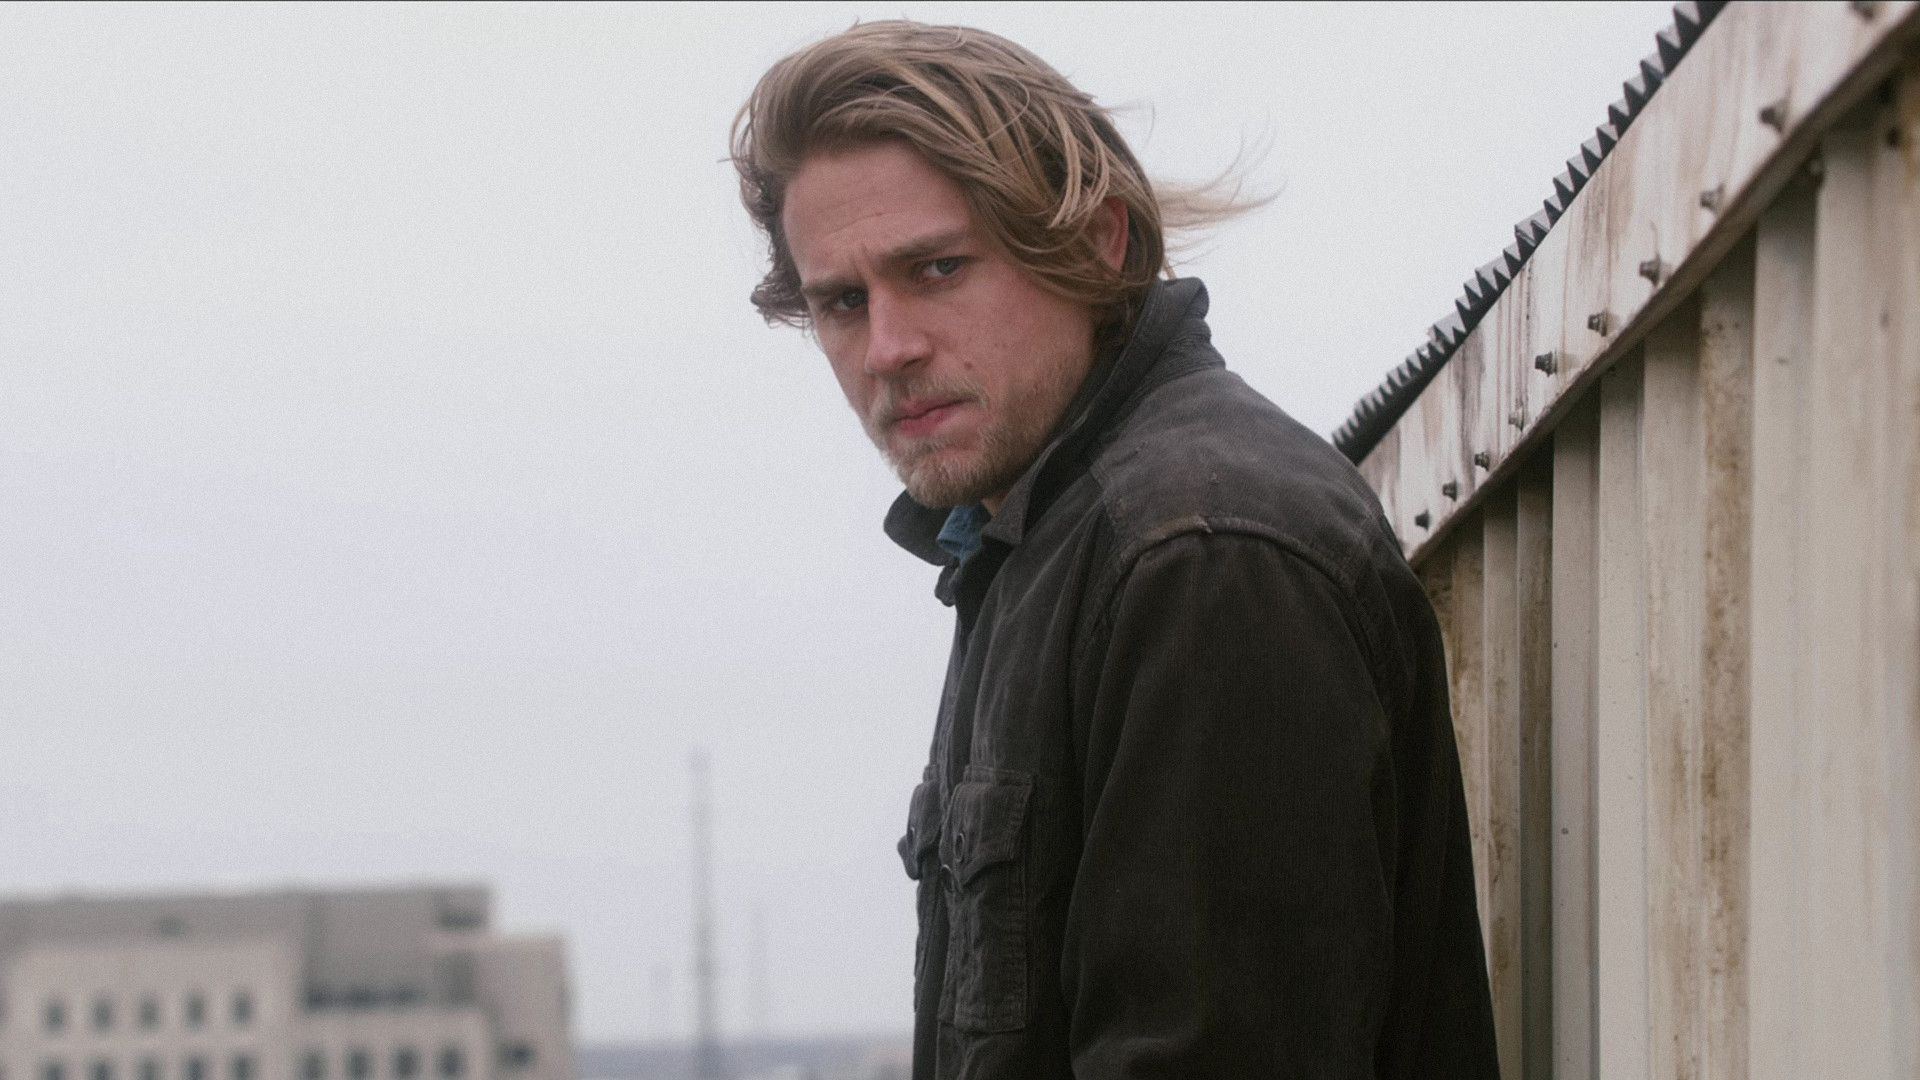 HD Charlie Hunnam Wallpaper Wallpaper Database 1920x1080